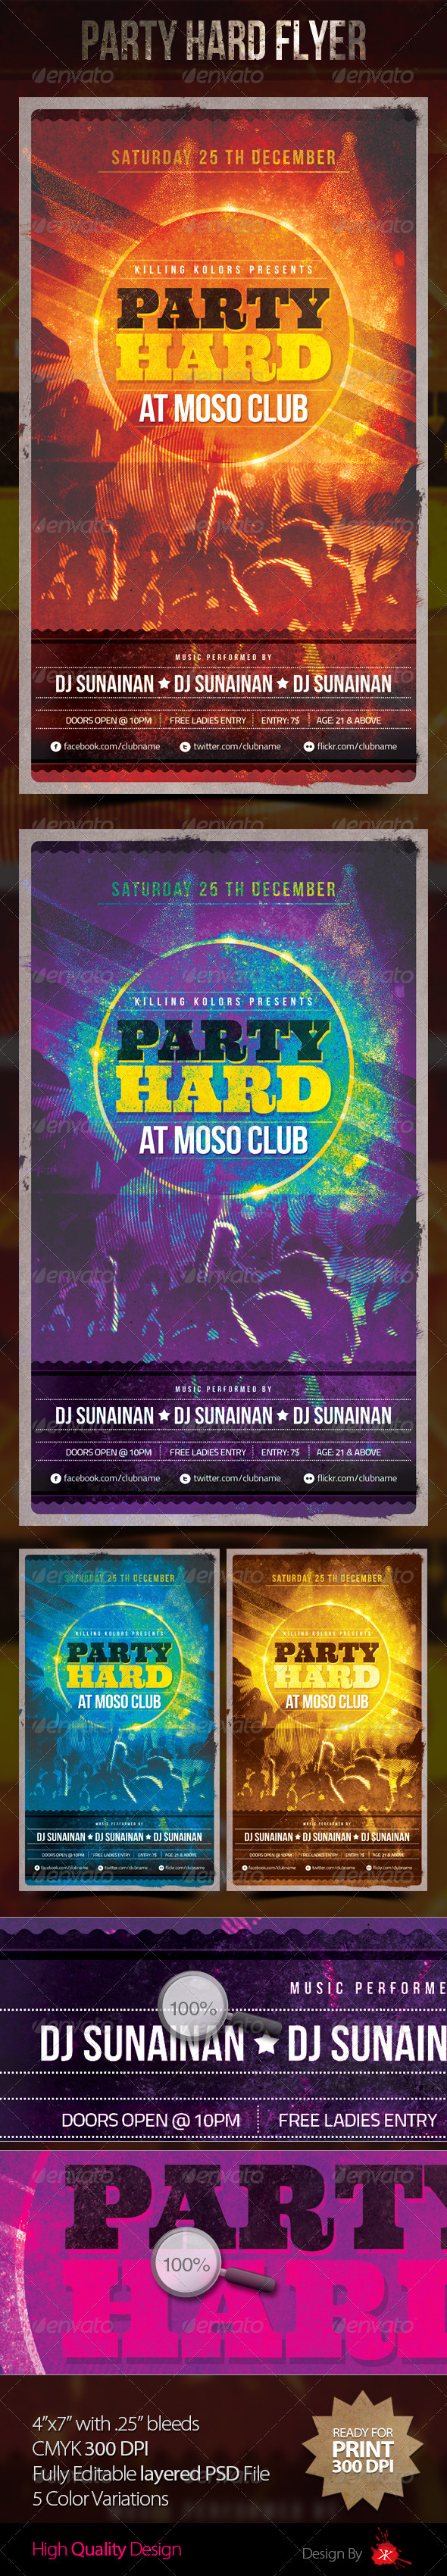 Party Hard Flyer - Clubs & Parties Events